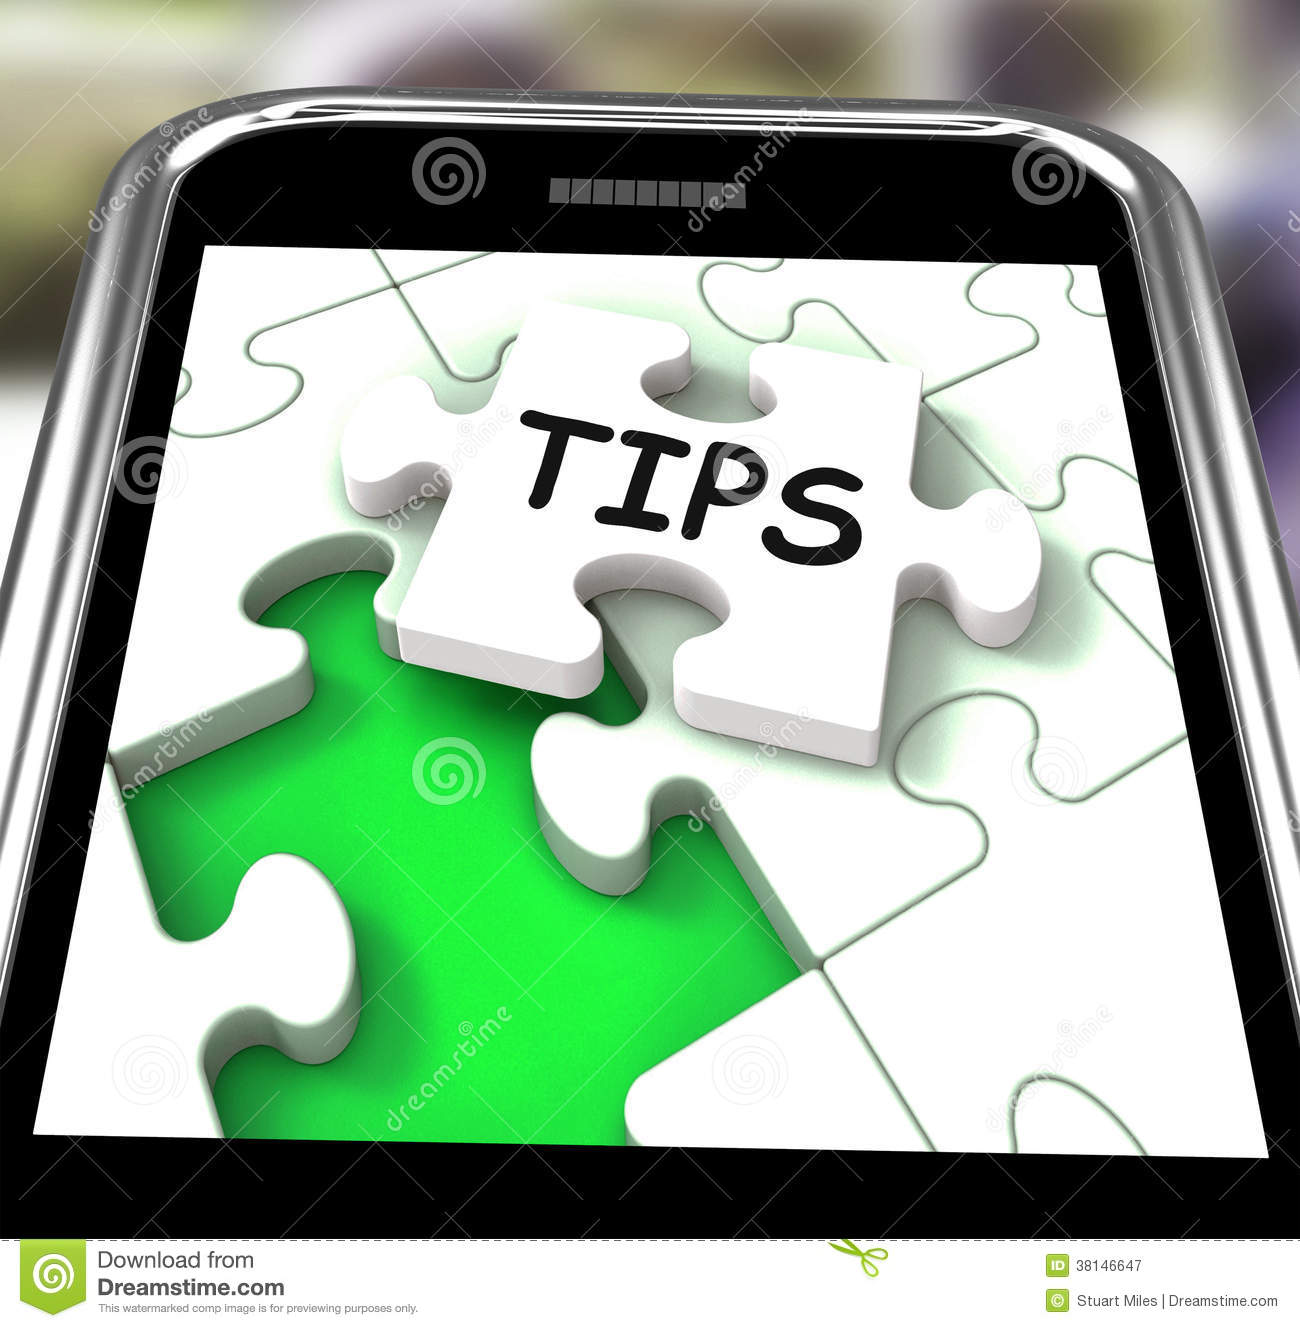 Tips Smartphone Shows Internet Prompts And Guidance Stock